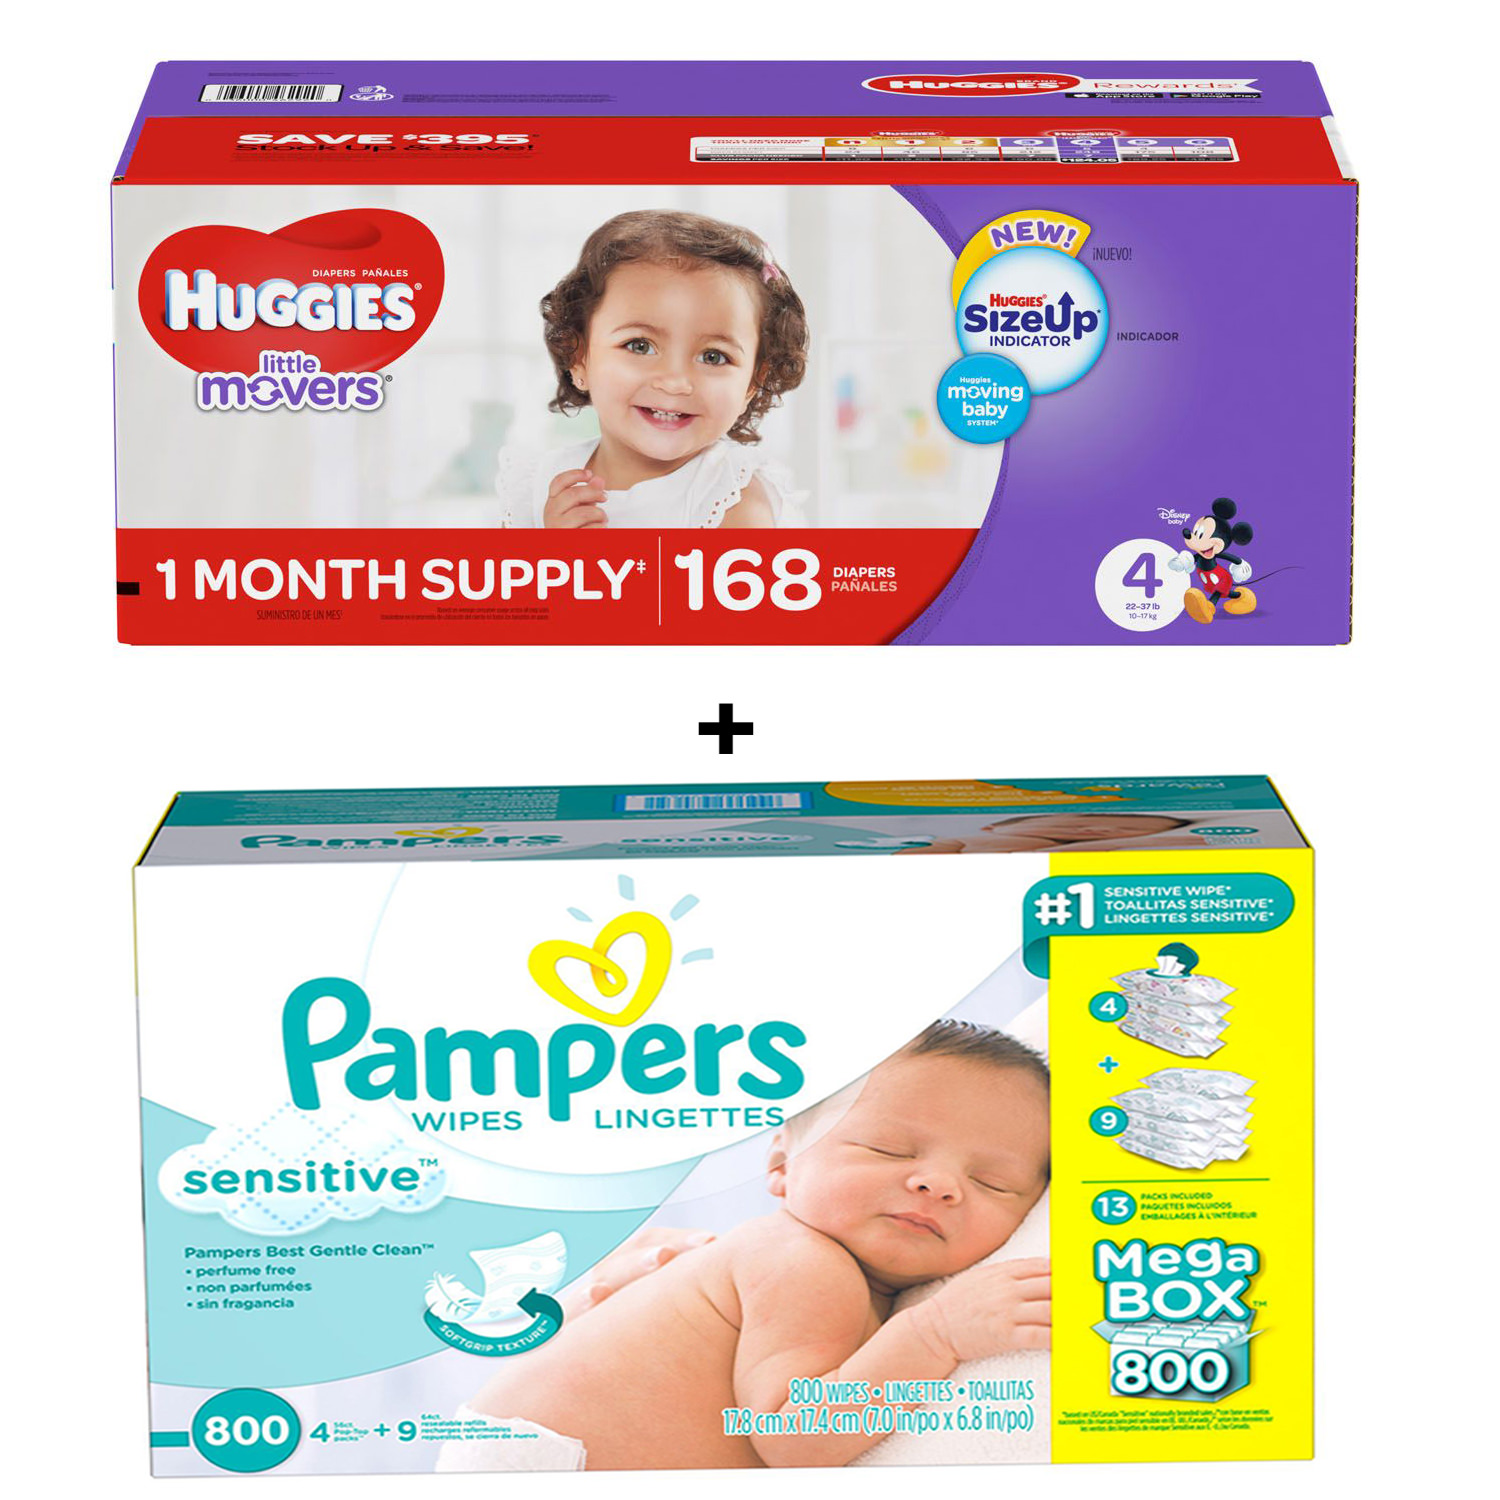 Huggies Little Movers Diapers 4 -168 ct. (22-37 lbs.) Bundles with Pampers Sensitive Baby Wipes (800 ct.)